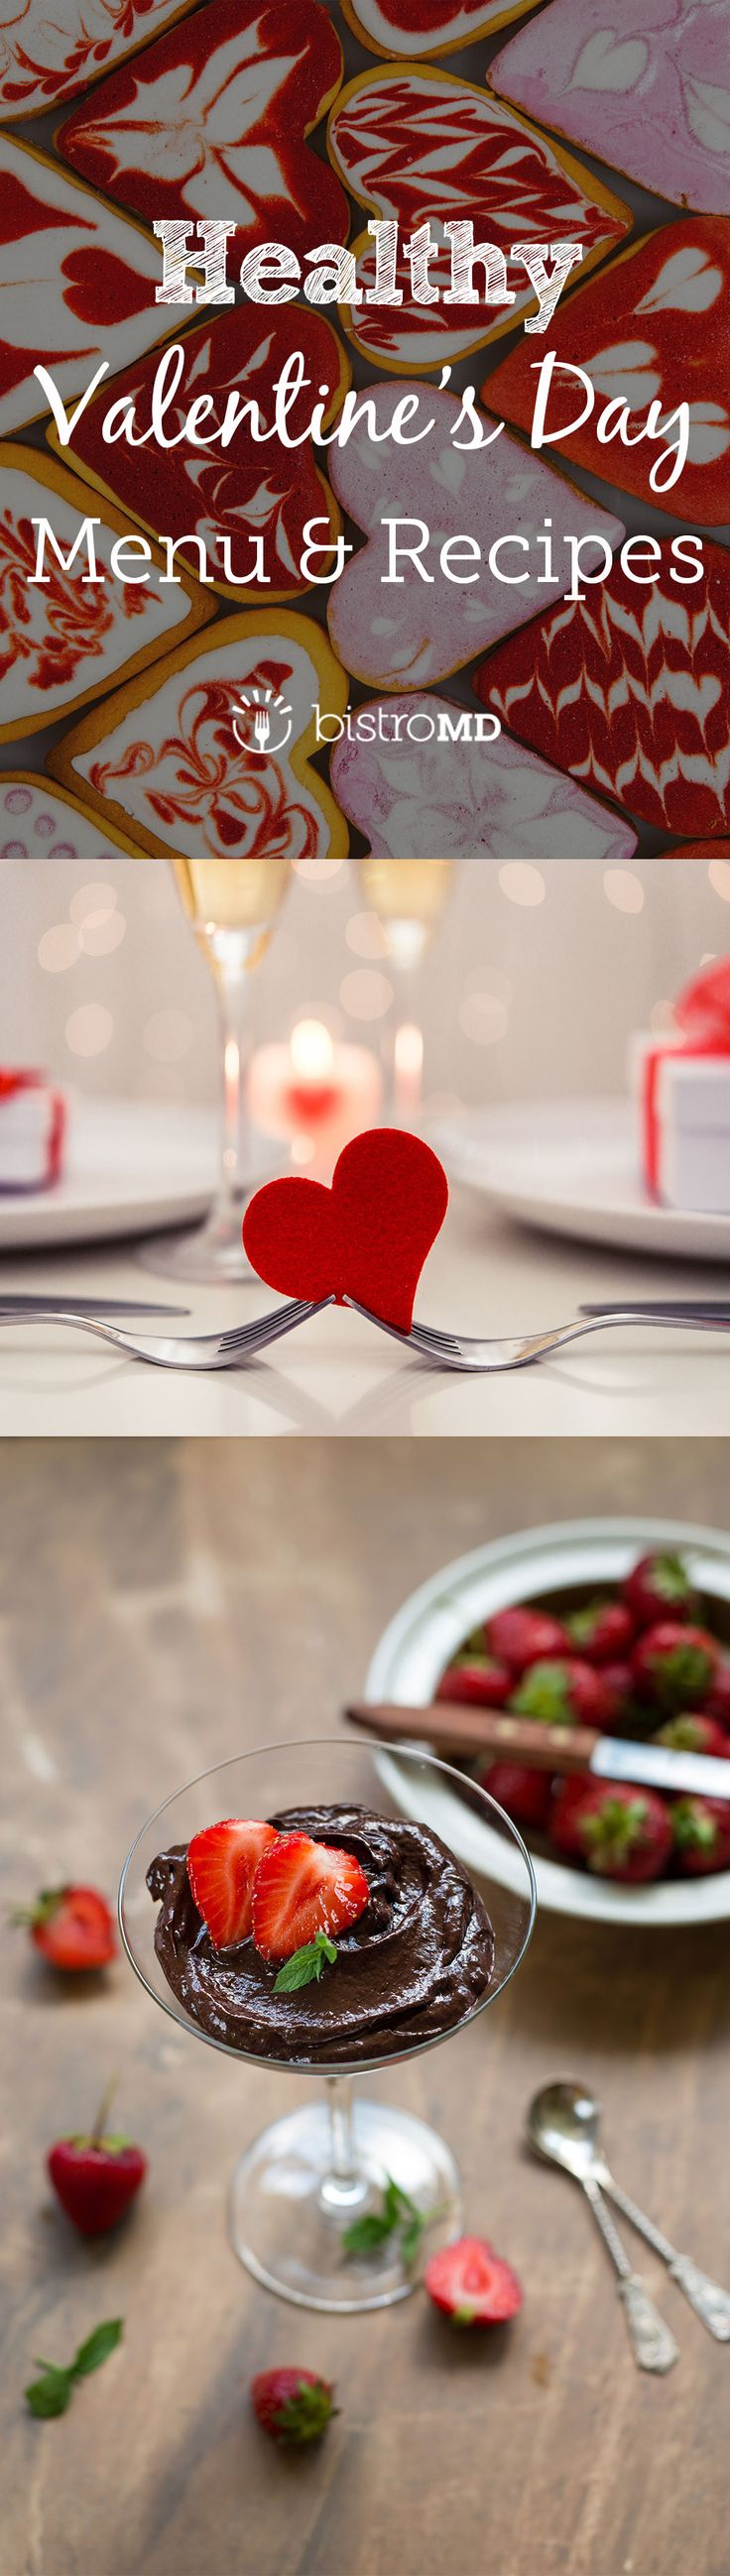 Skip the busy restaurant crowds and create an intimate night in from the comfort of your own home! From appetizers through desserts, fill your hearts without the guilt with this ultimate guide to building a healthy Valentine's Day dinner!